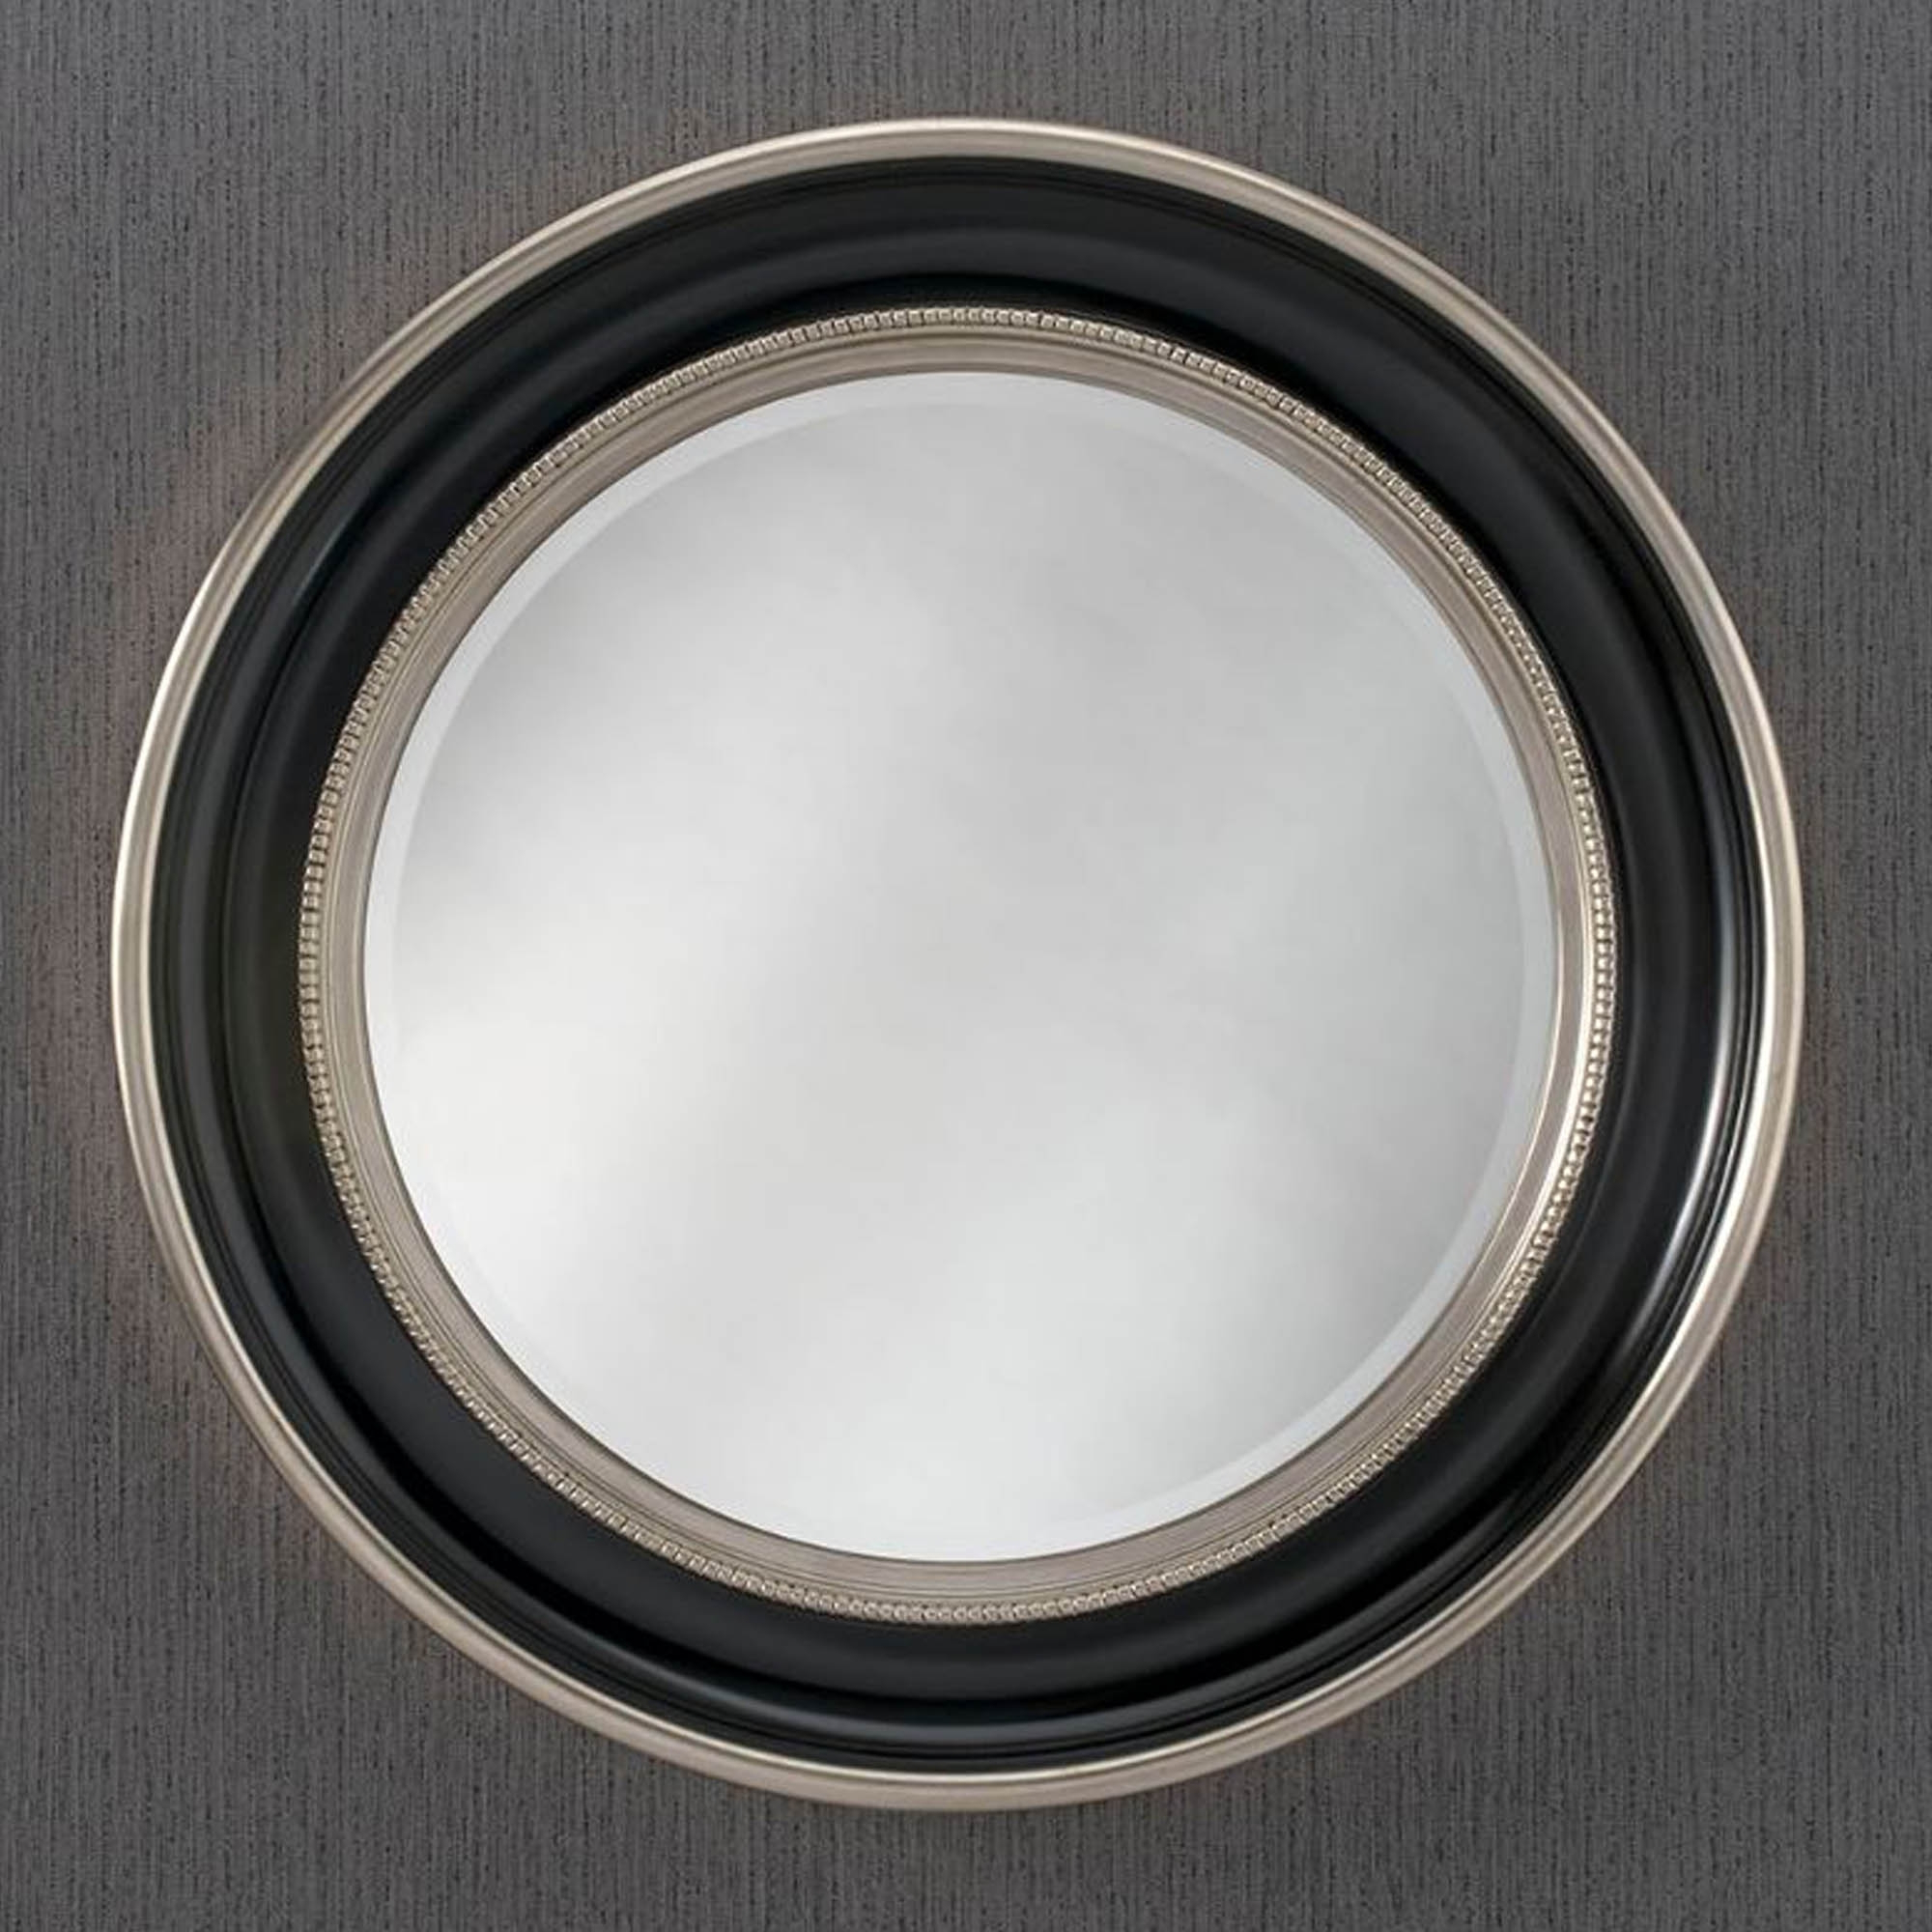 Famous Round Black & Silver Contemporary Wall Mirror Intended For Round Black Wall Mirrors (View 5 of 20)